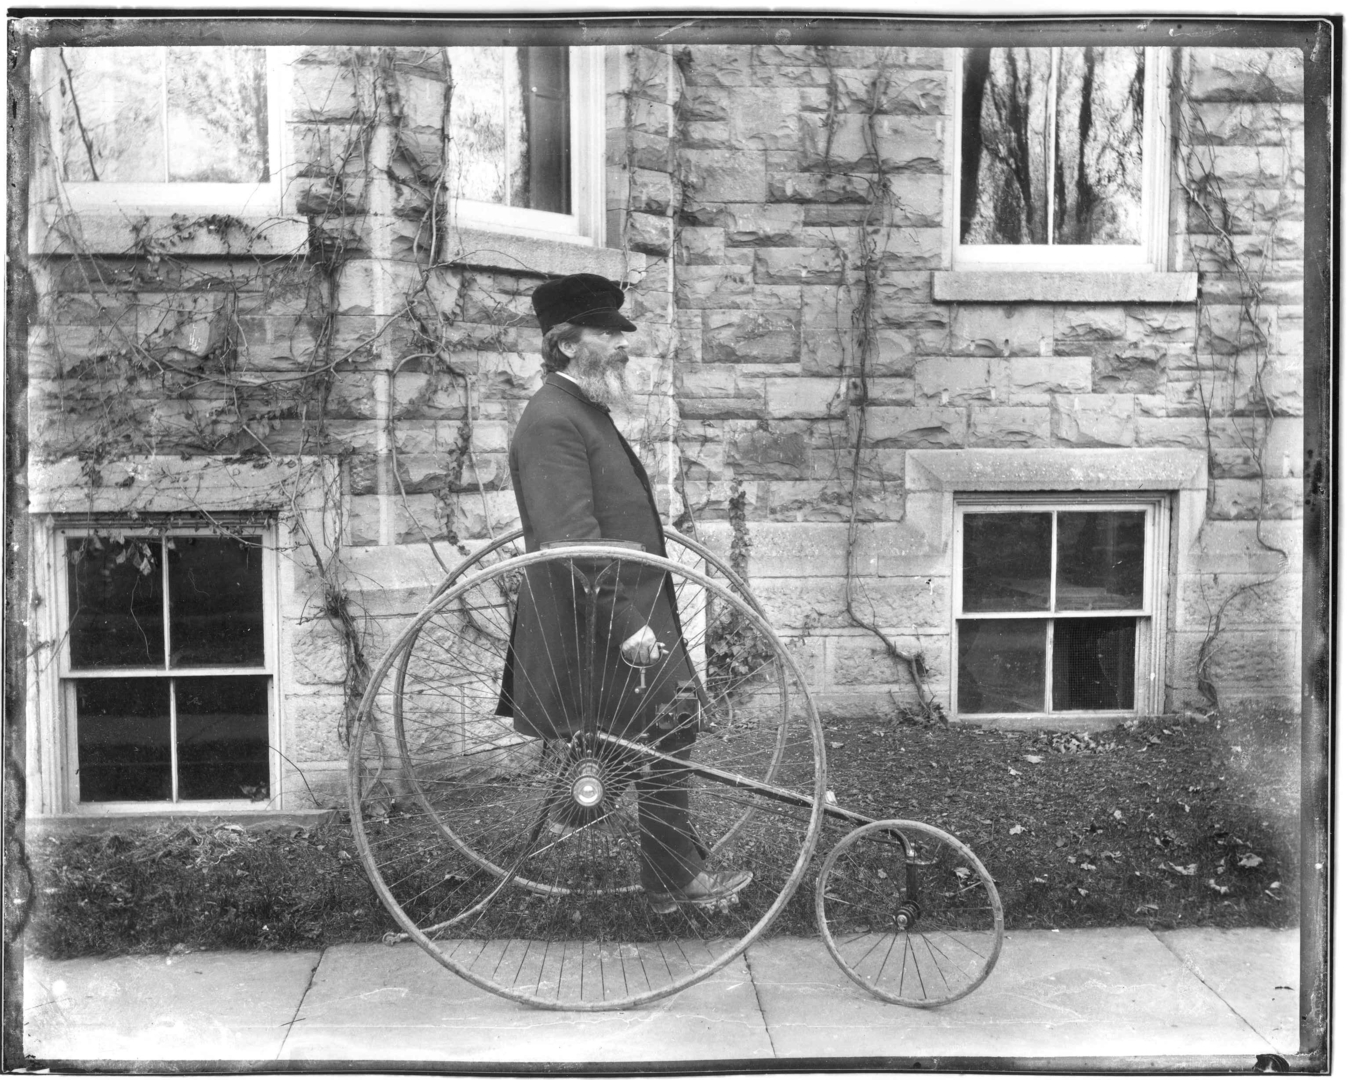 Rev. Beecher on Tricycle